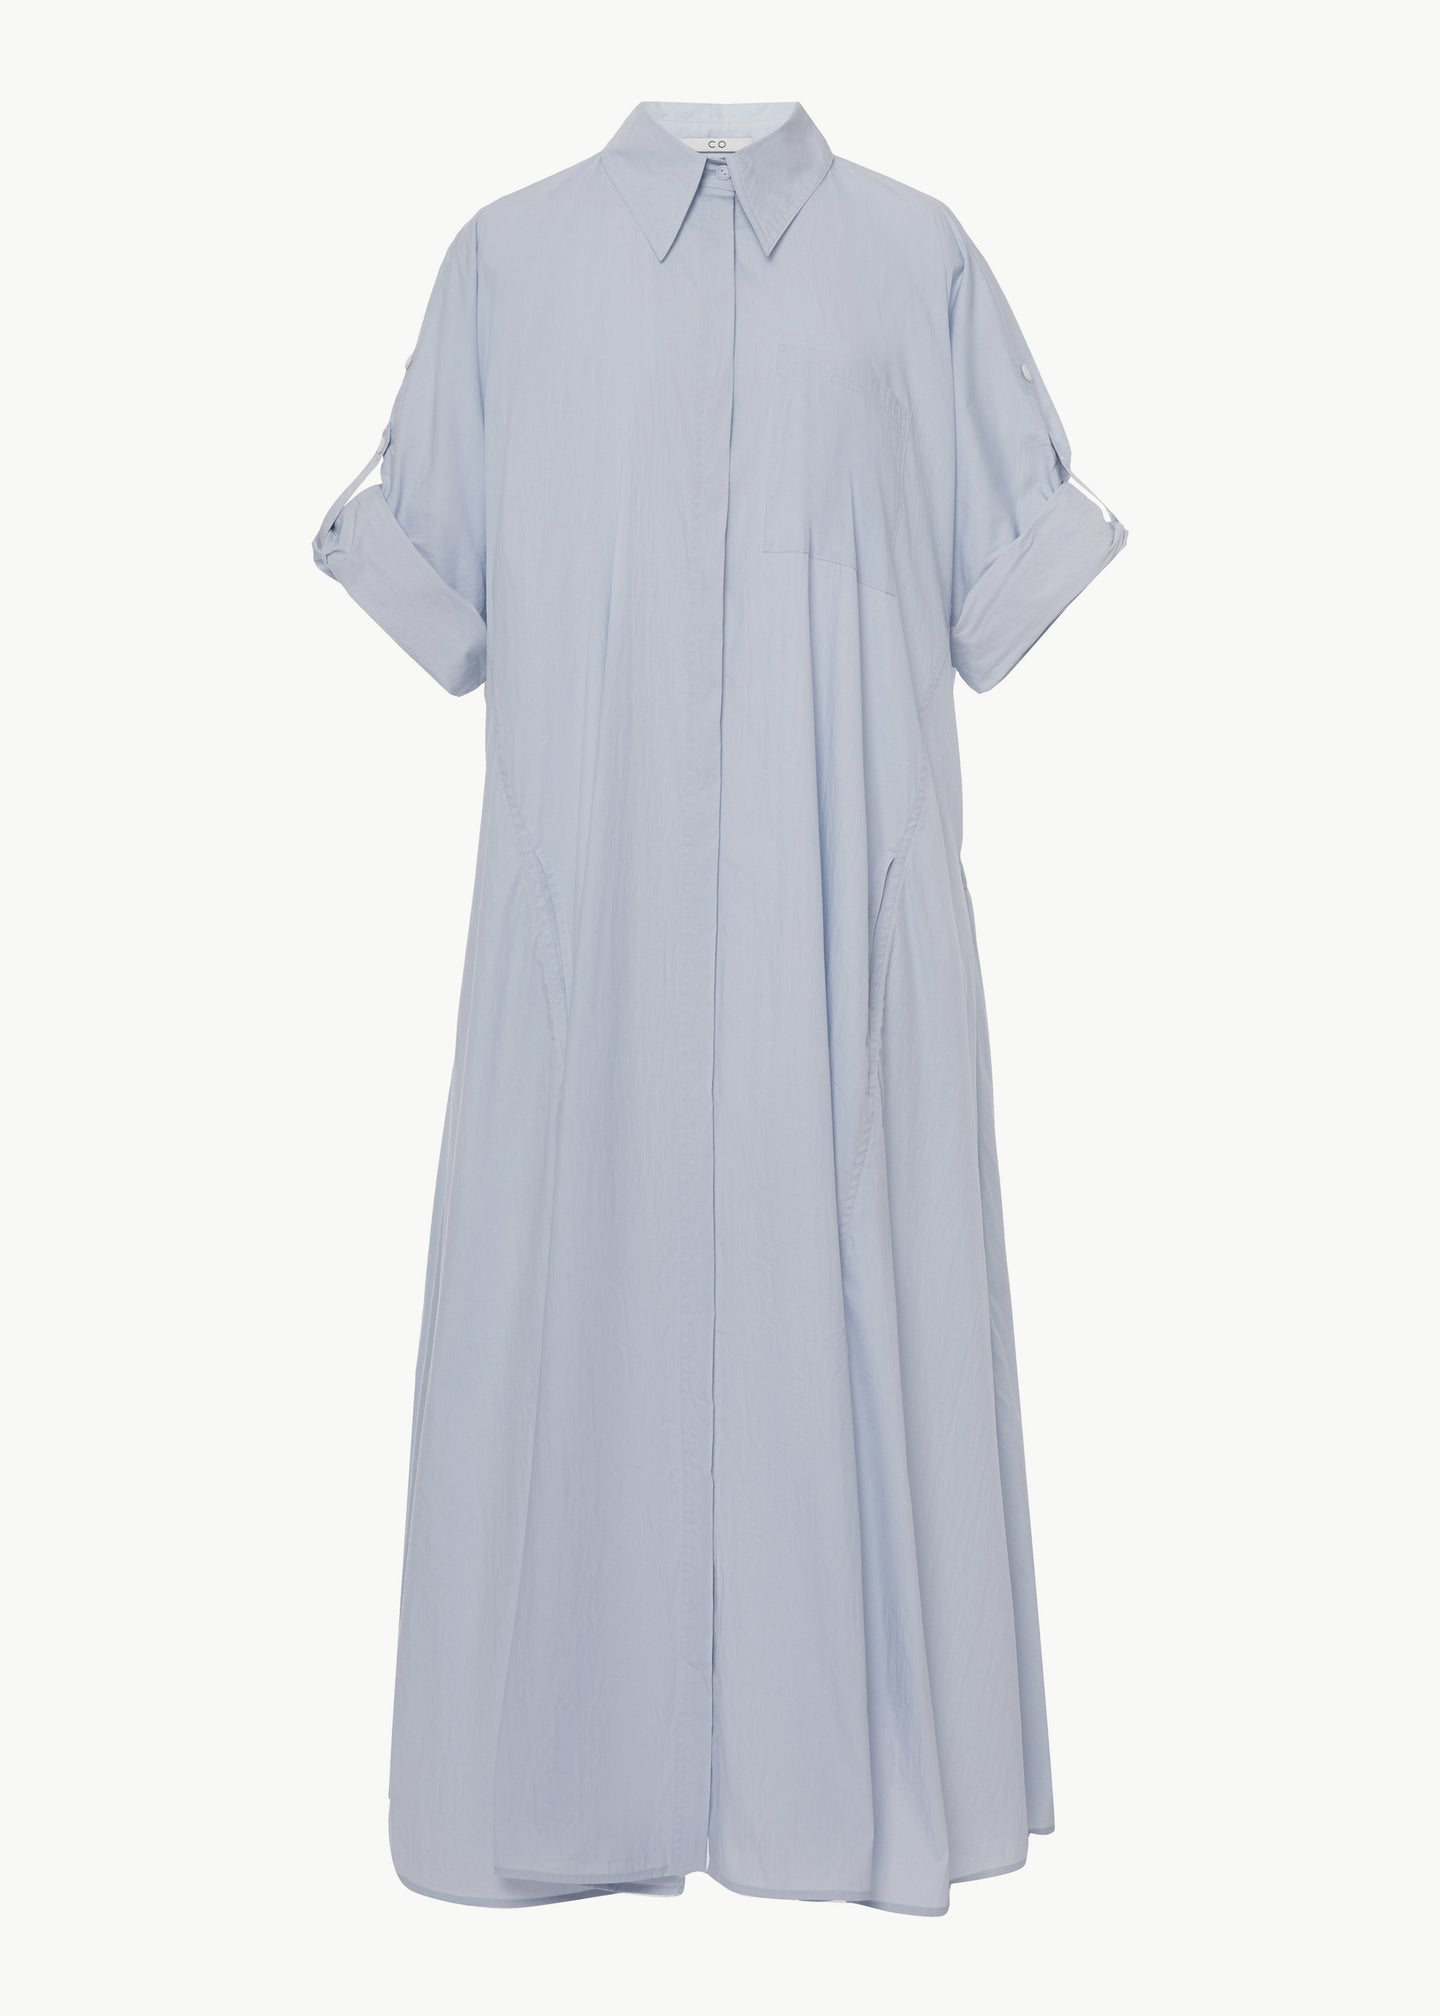 Rolled Sleeve Shirtdress in Cotton Nylon - Blue - Co Collections